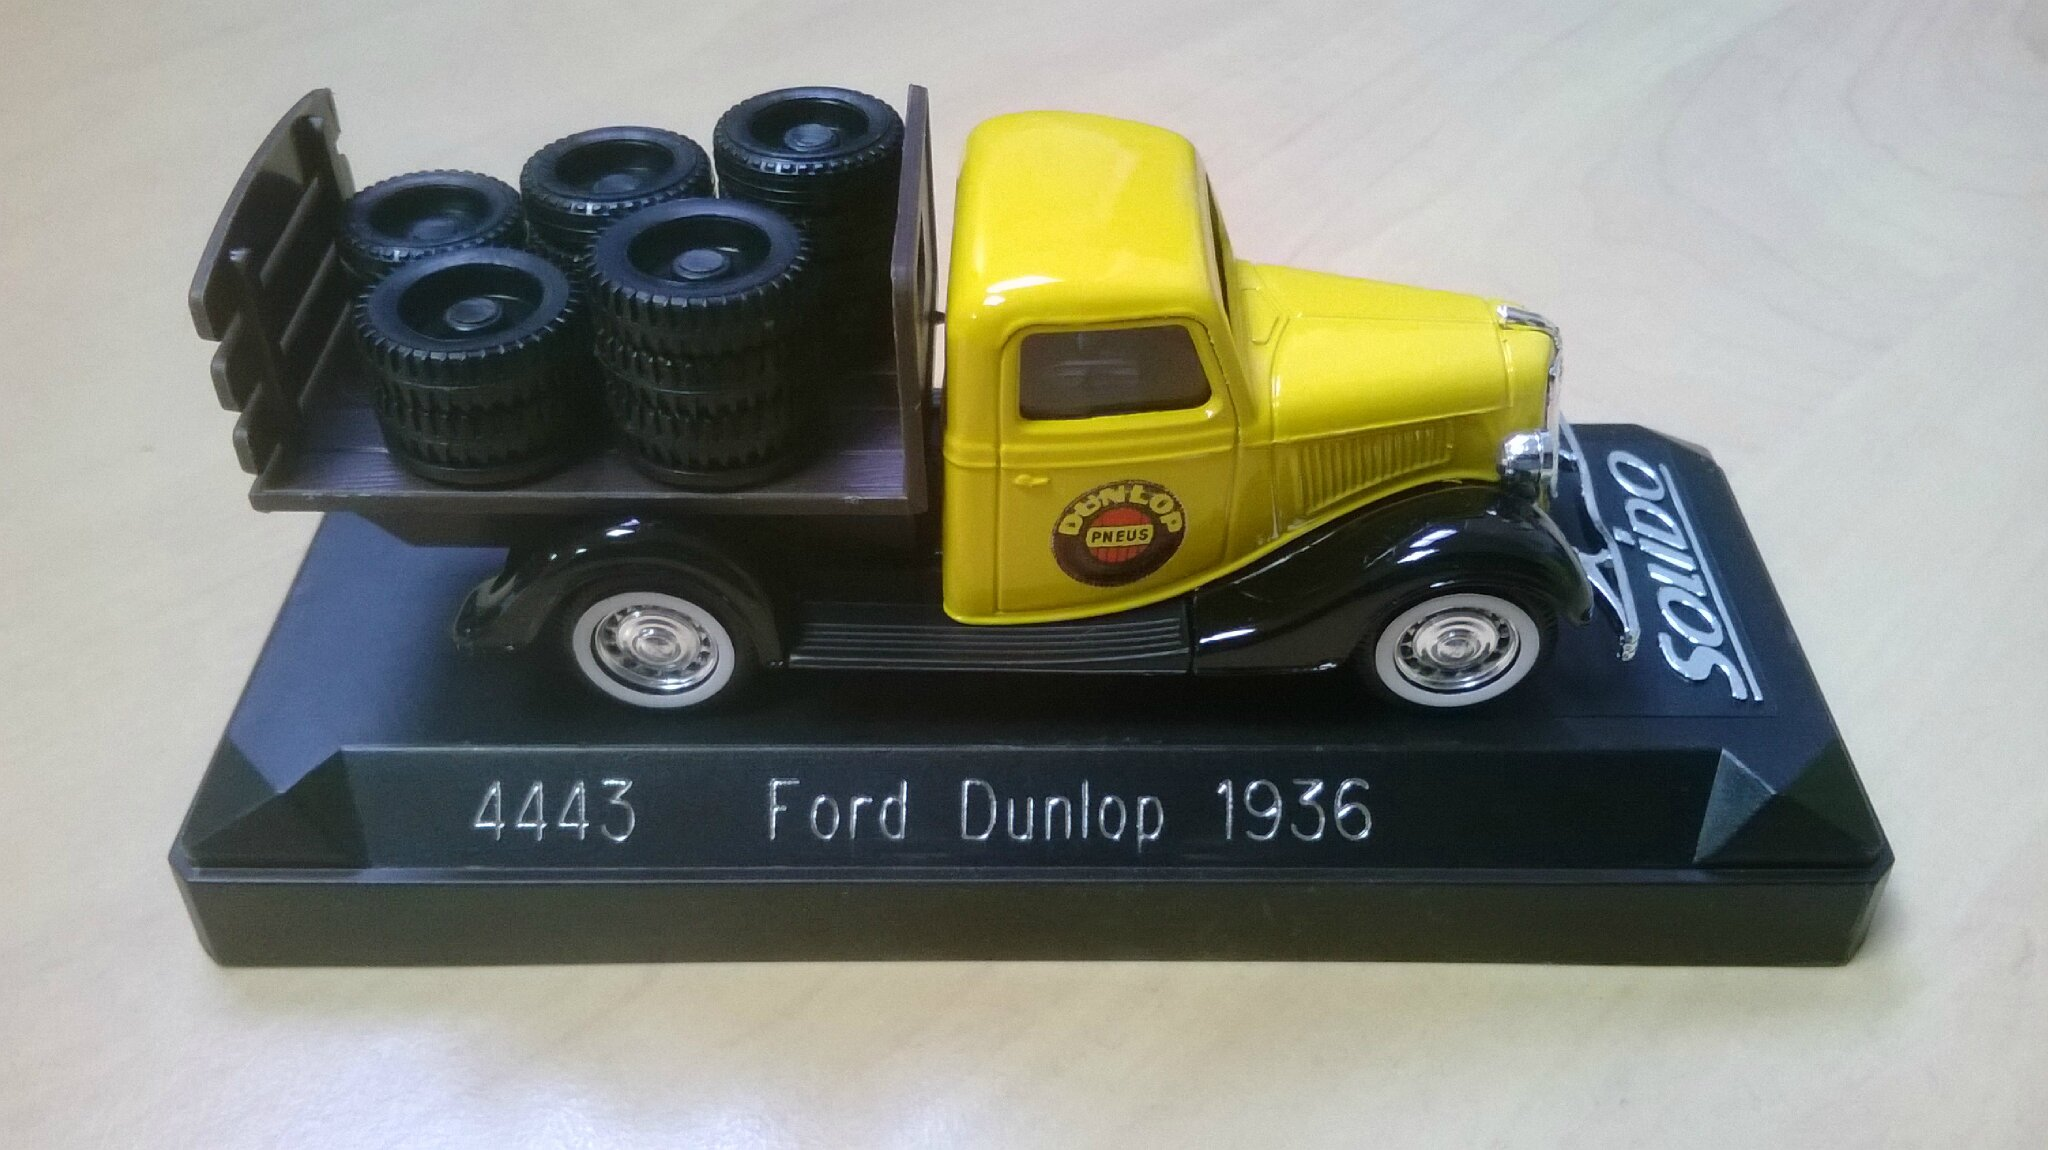 4443_Ford Dunlop 1936_01